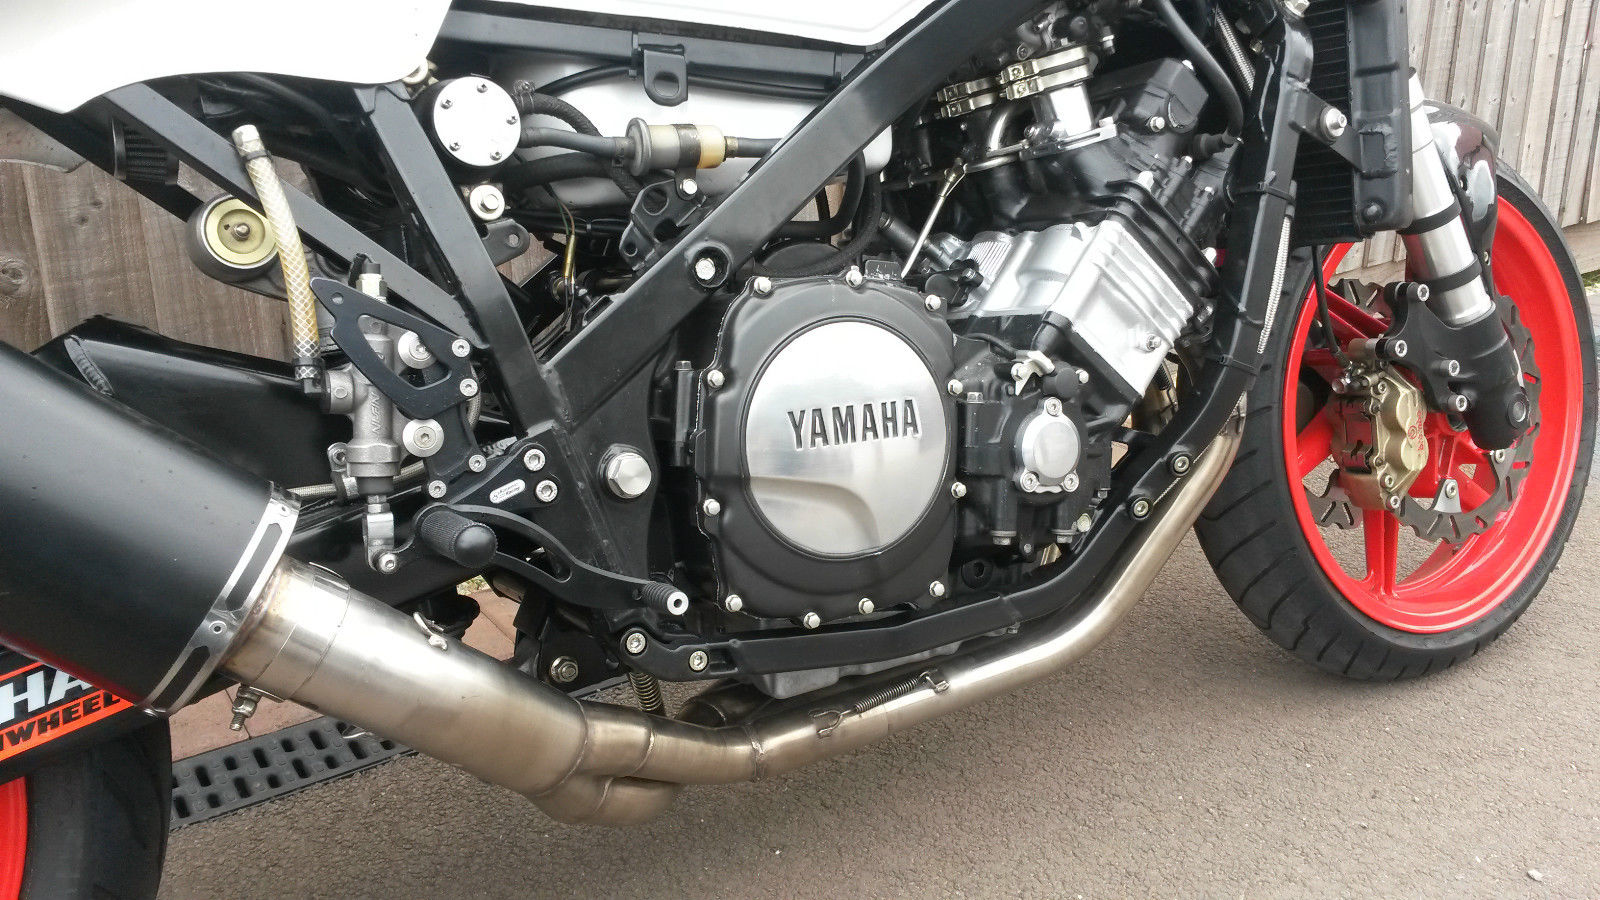 Yamaha Fz 750 2mg Rocketgarage Cafe Racer Magazine Buell Rotax Engine Diagram To Sum Up This Bike Is No Trailer Queen Its A Well Thought Out And Engineering Track Road Suitable For Days As Sunday Toy Enjoy